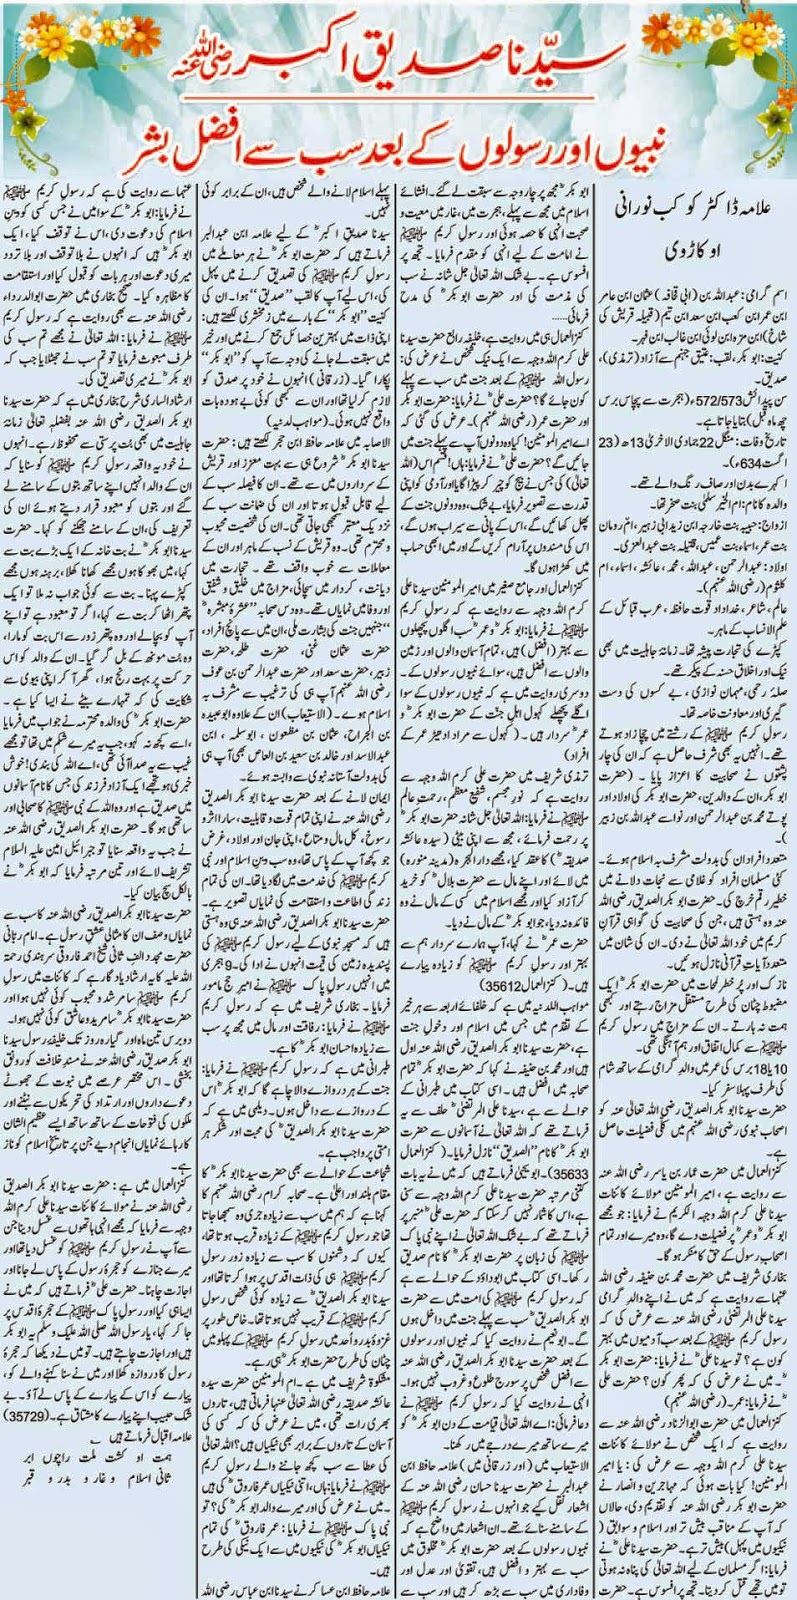 Abu Bakr article